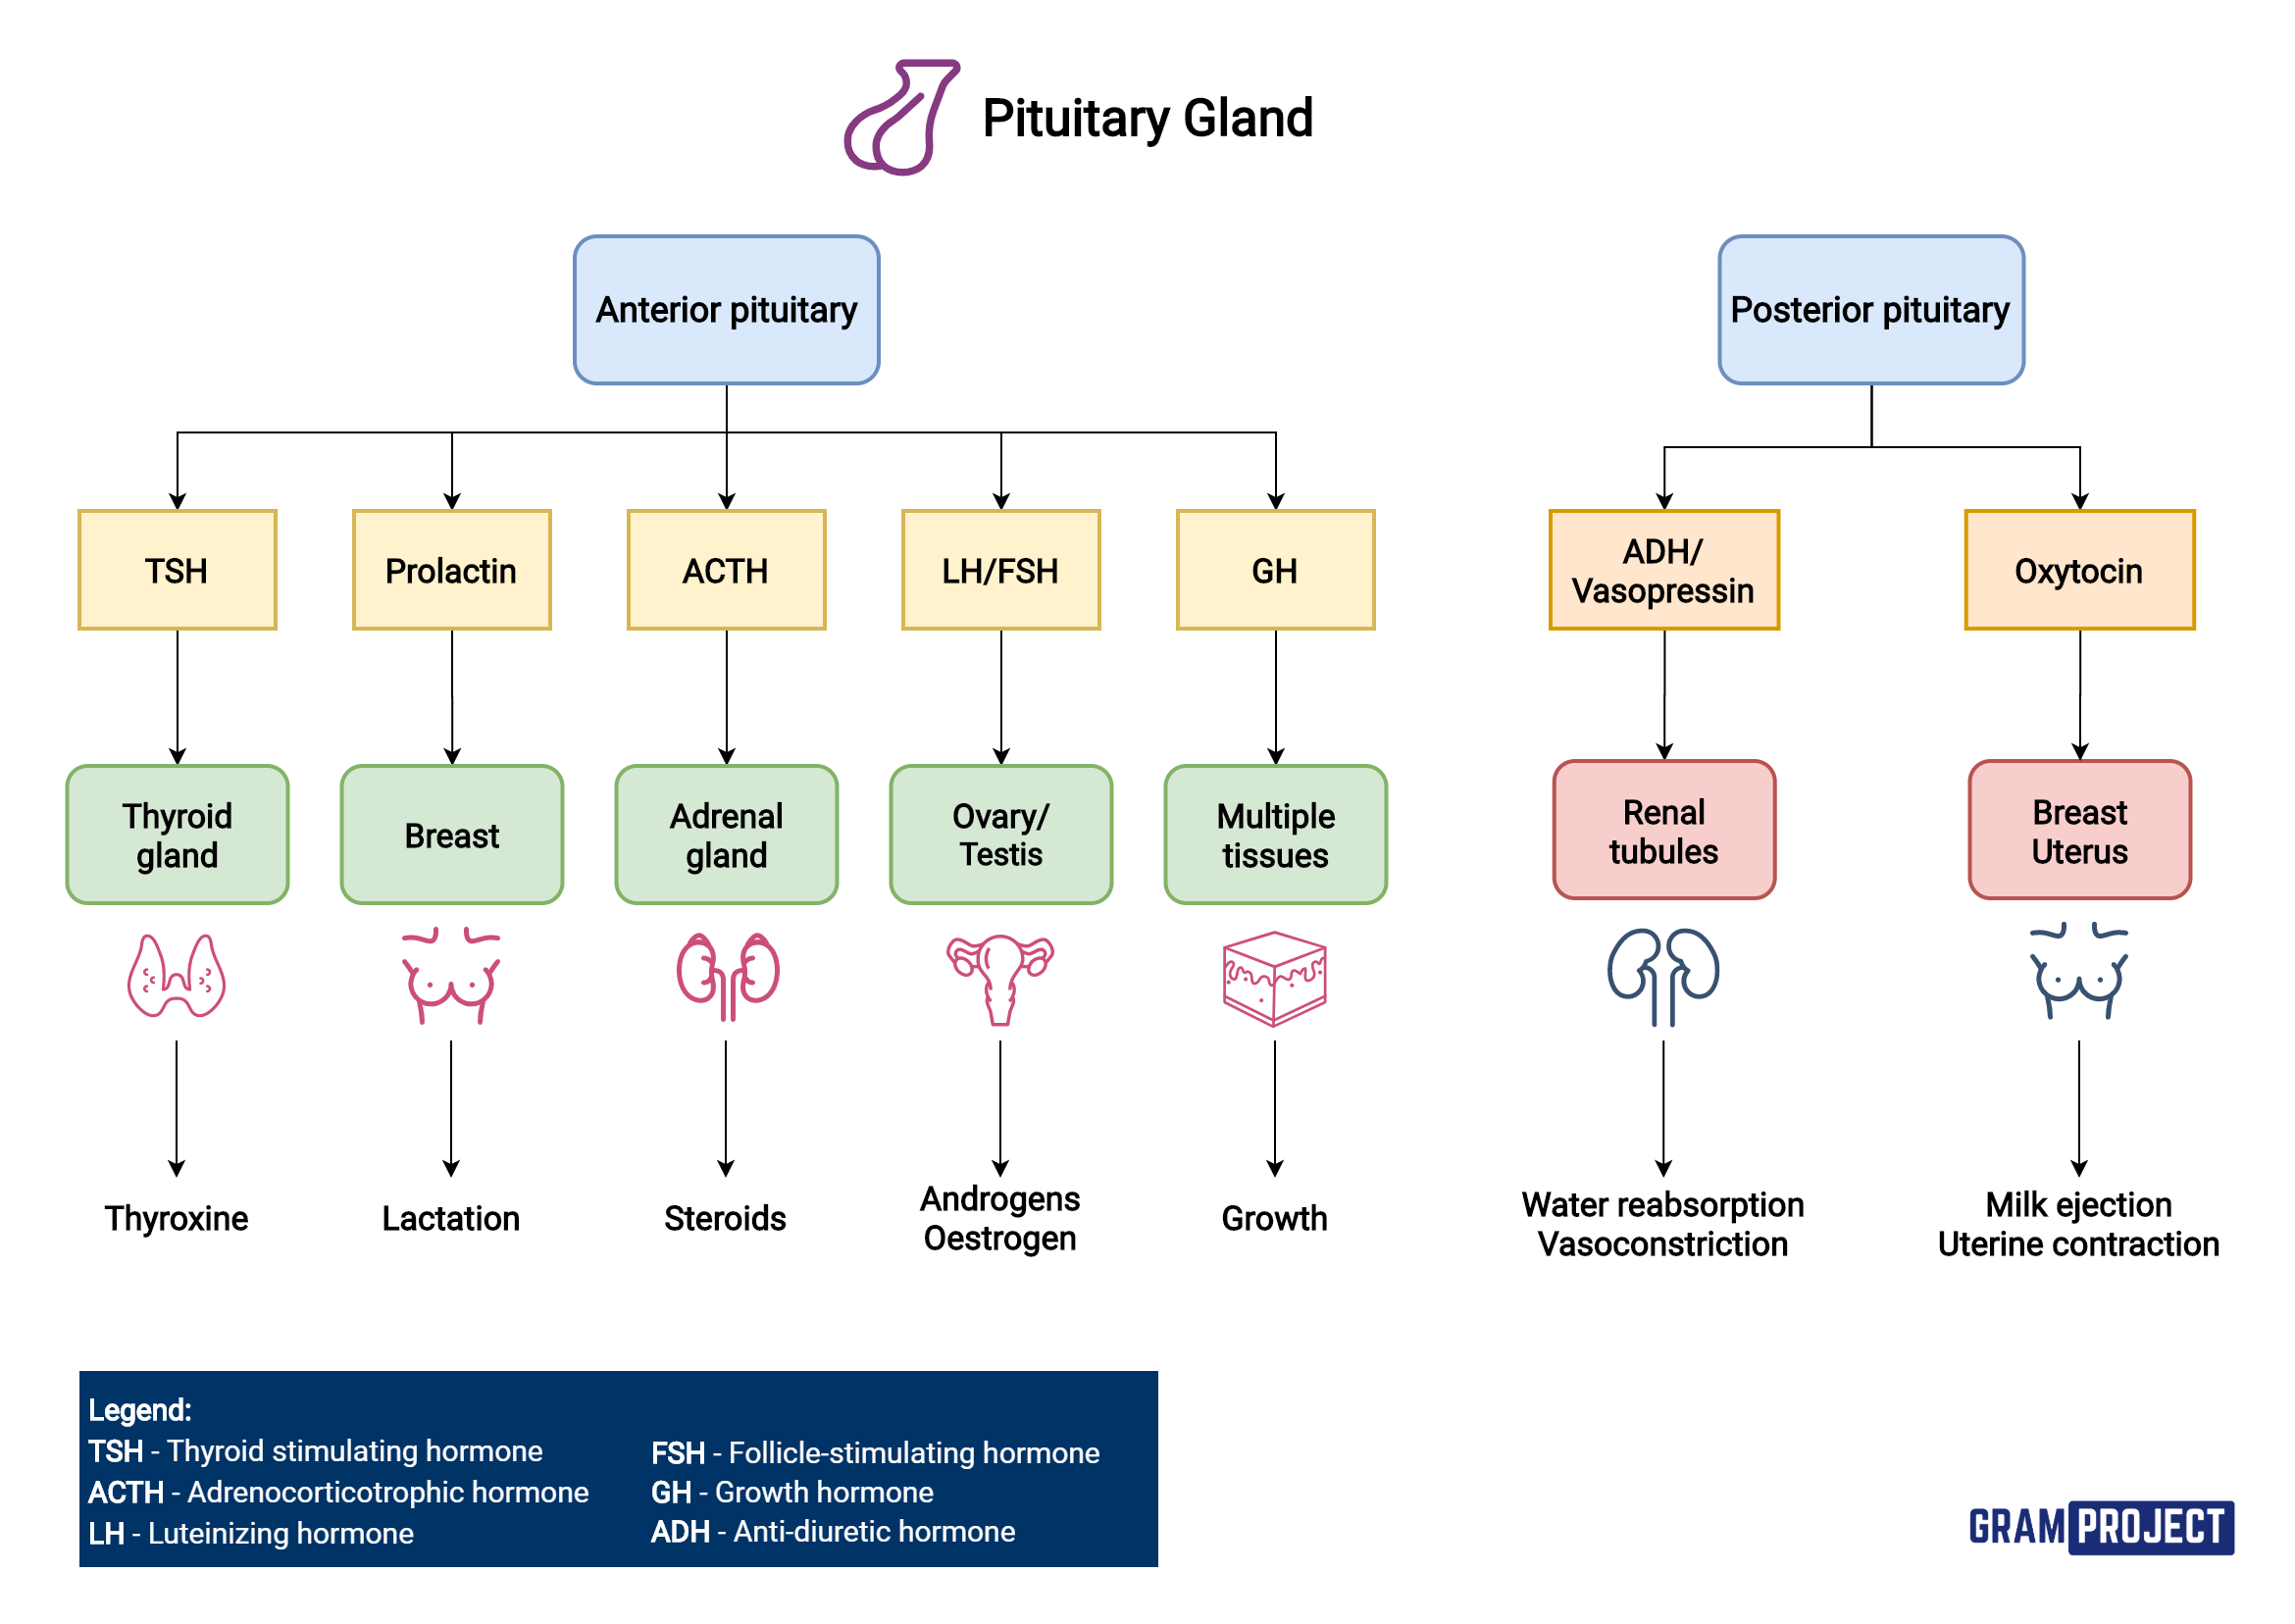 Summary of hormones released by the pituitary gland and their action